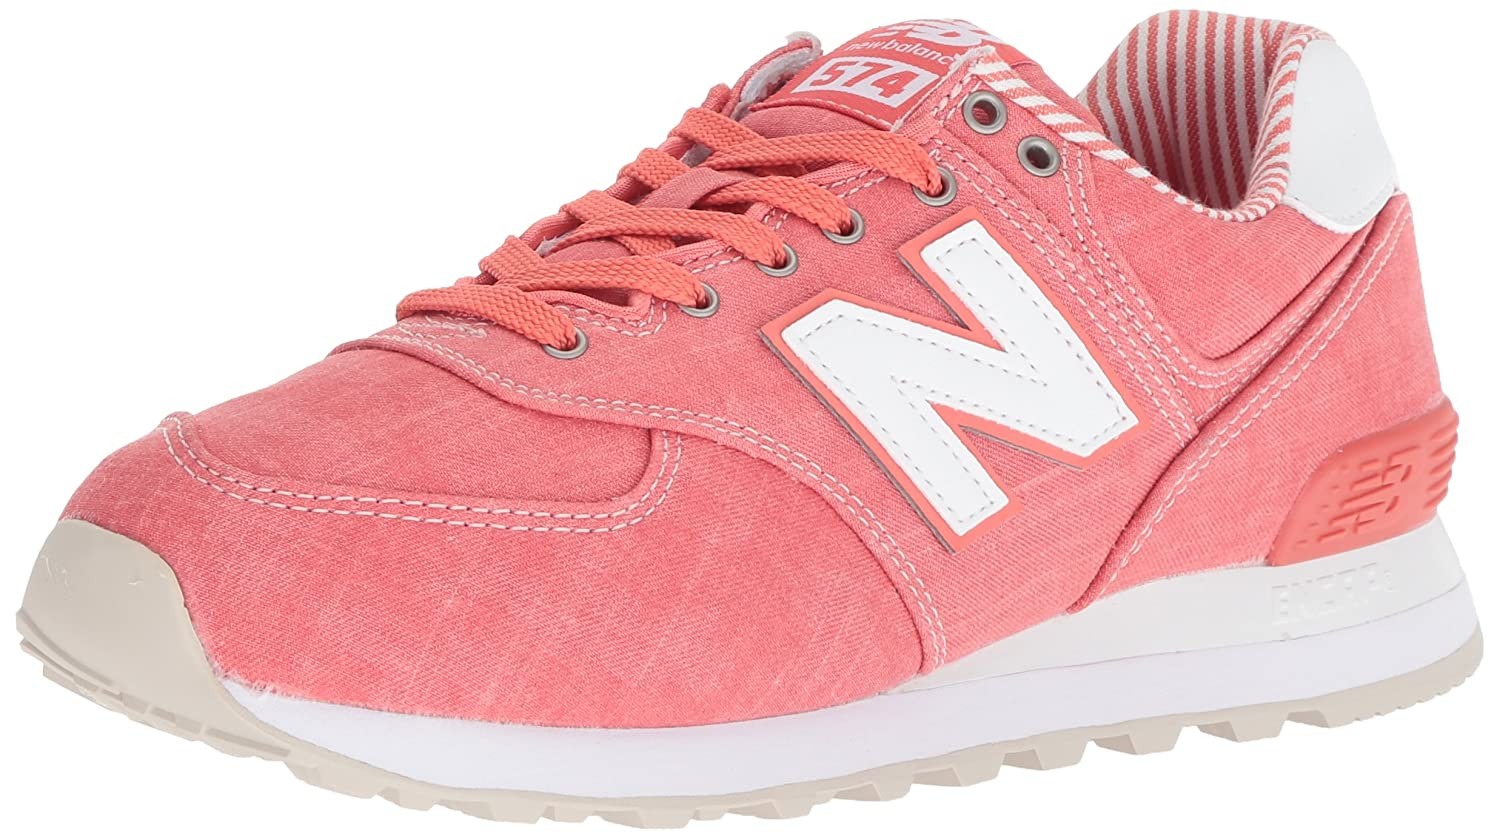 New Balance Women's 574v2 Sneaker B0751FL32N 5.5 D US|Spiced Coral/White